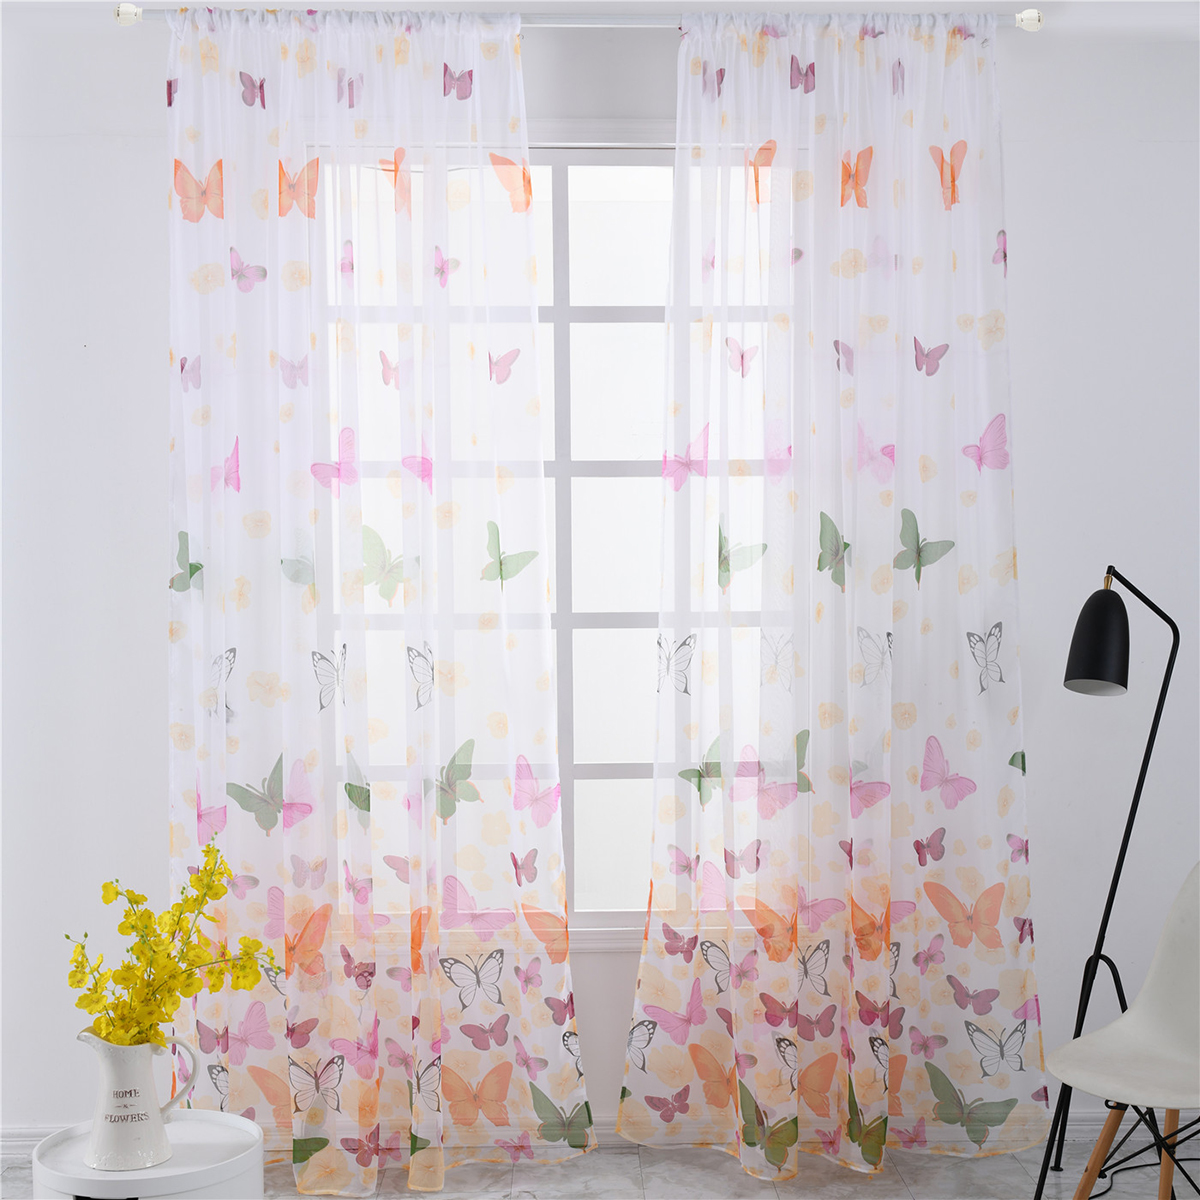 Butterfly Printed Semi Sheer Curtains Flower Window Gauze Living Room Bedroom Window Drape Balcony Tulle Room Divider Walmart Com Walmart Com